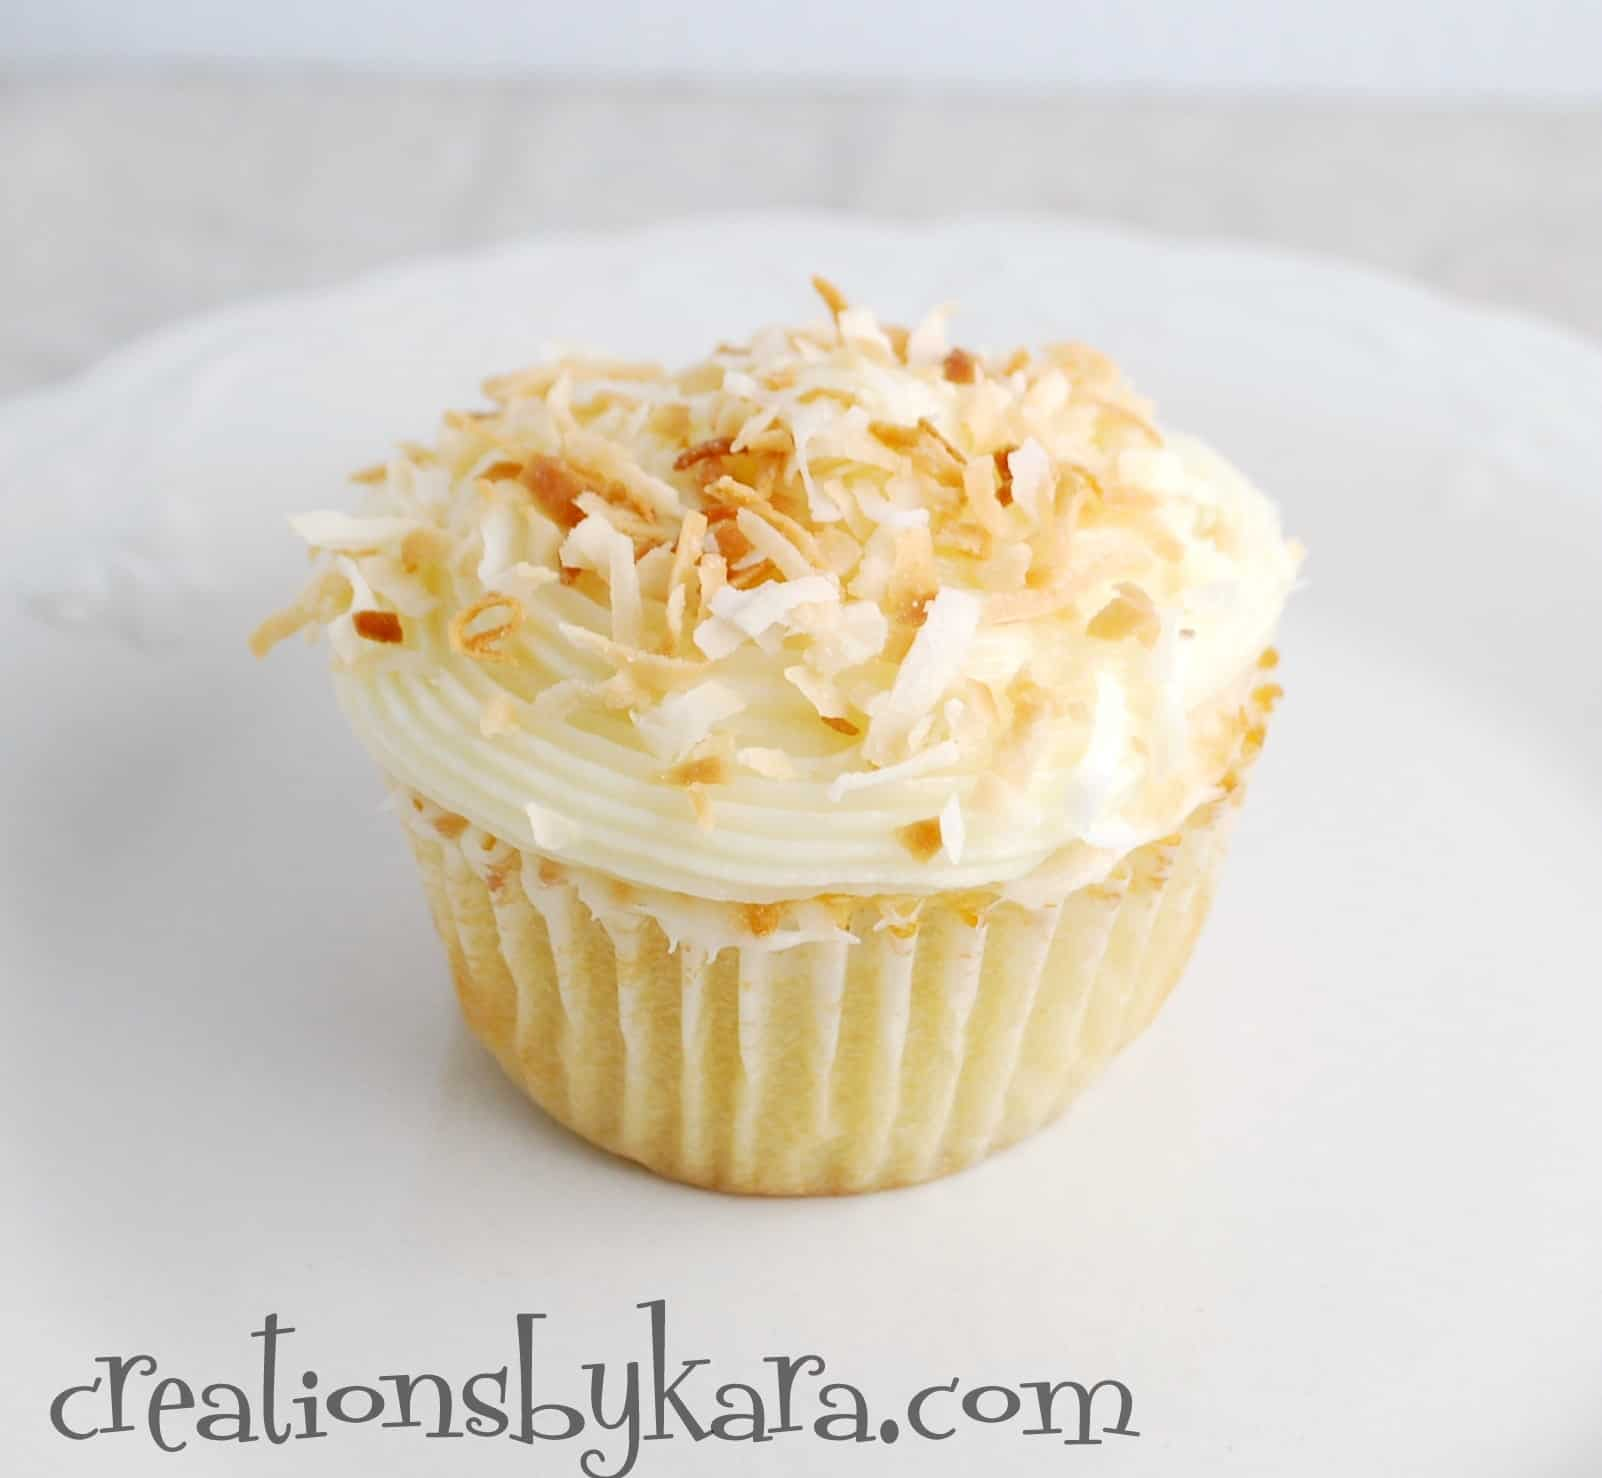 Chocolate Coconut Creams Dunmore Candy Kitchen: Coconut Cupcakes With Cream Cheese Frosting